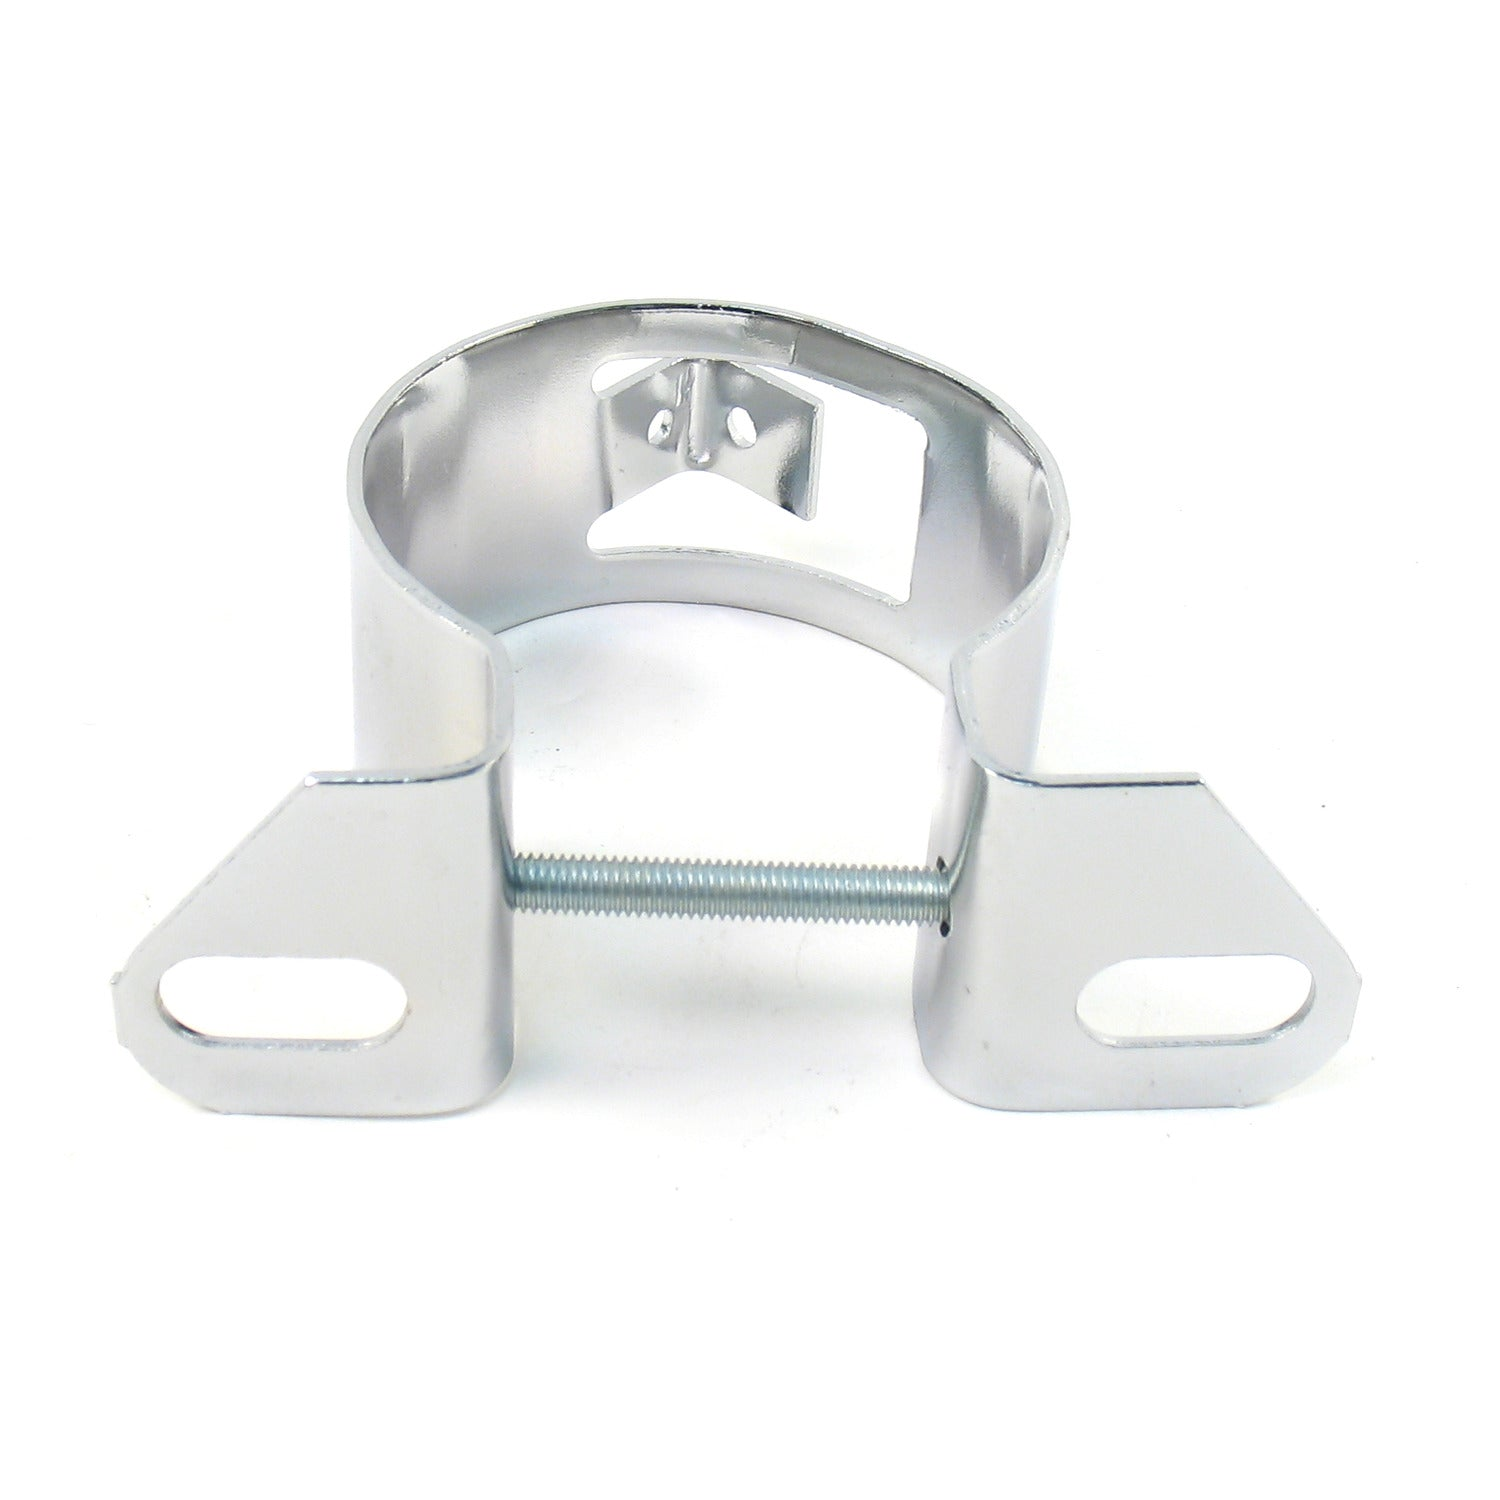 PerTronix 10002 Bracket, Coil - Chrome